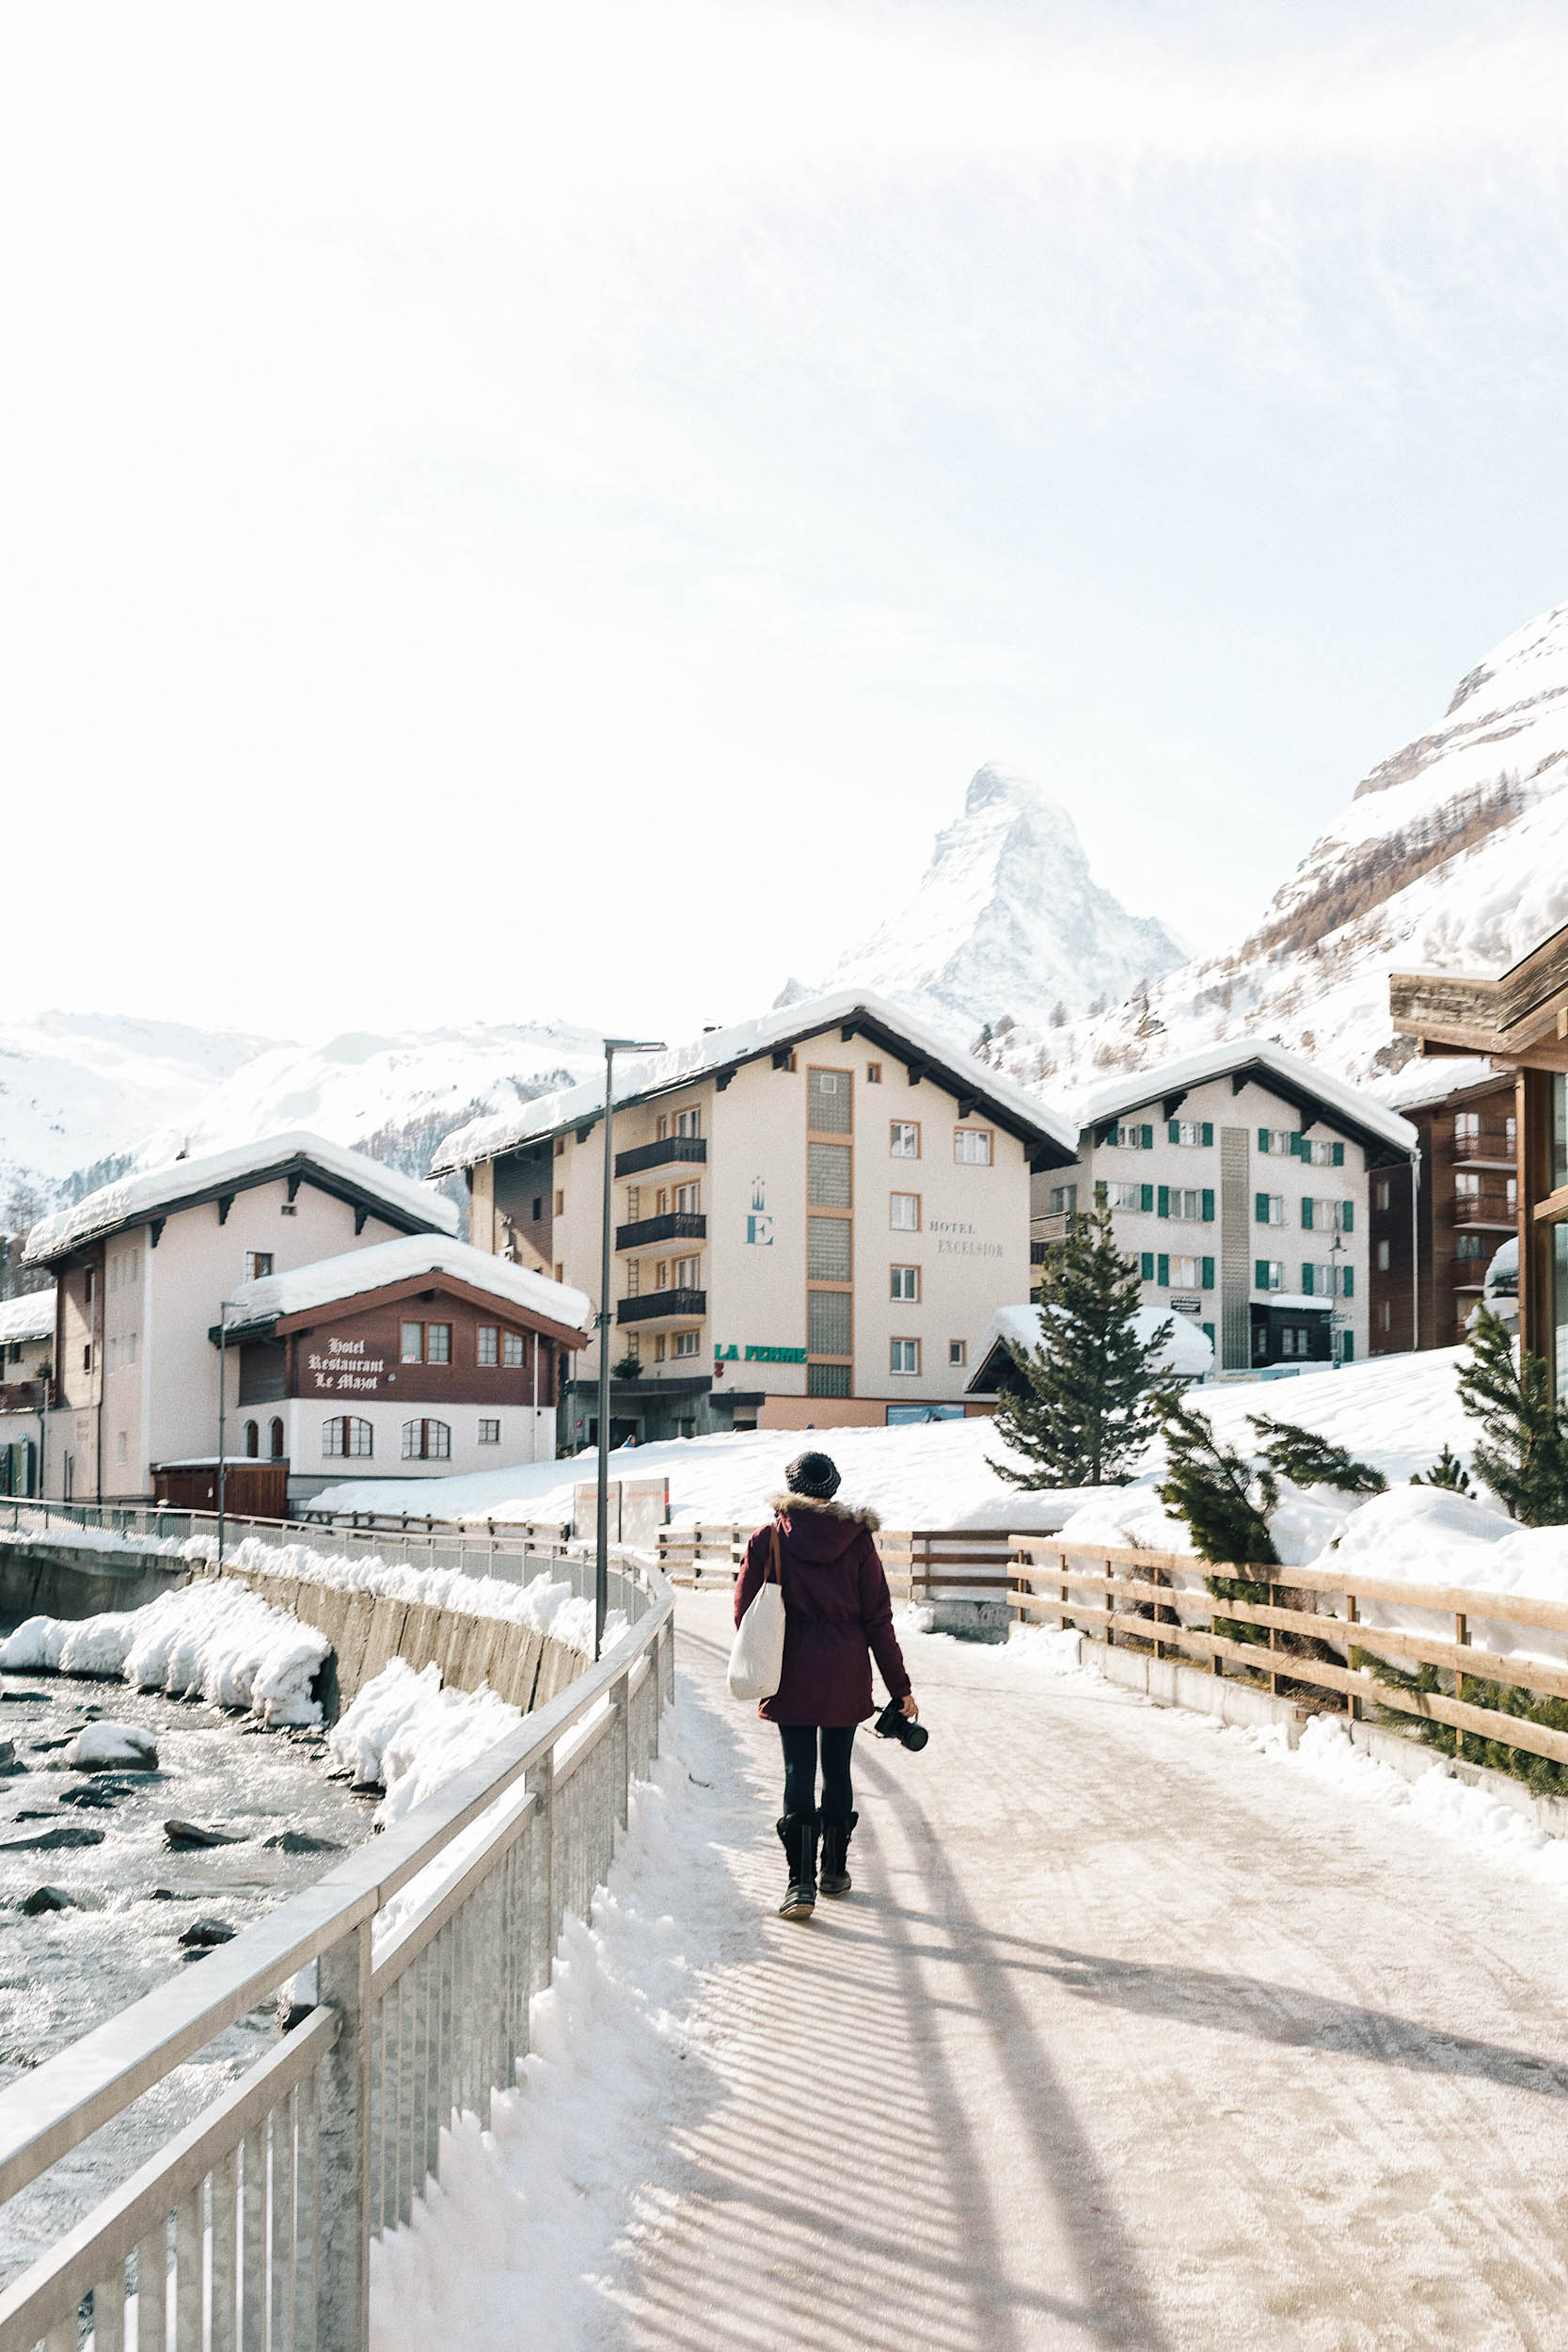 Zermatt is a charming mountain resort town in Switzerland, most widely known for it's skiing, climbing and hiking as well as for it's iconic views of the famous Matterhorn.